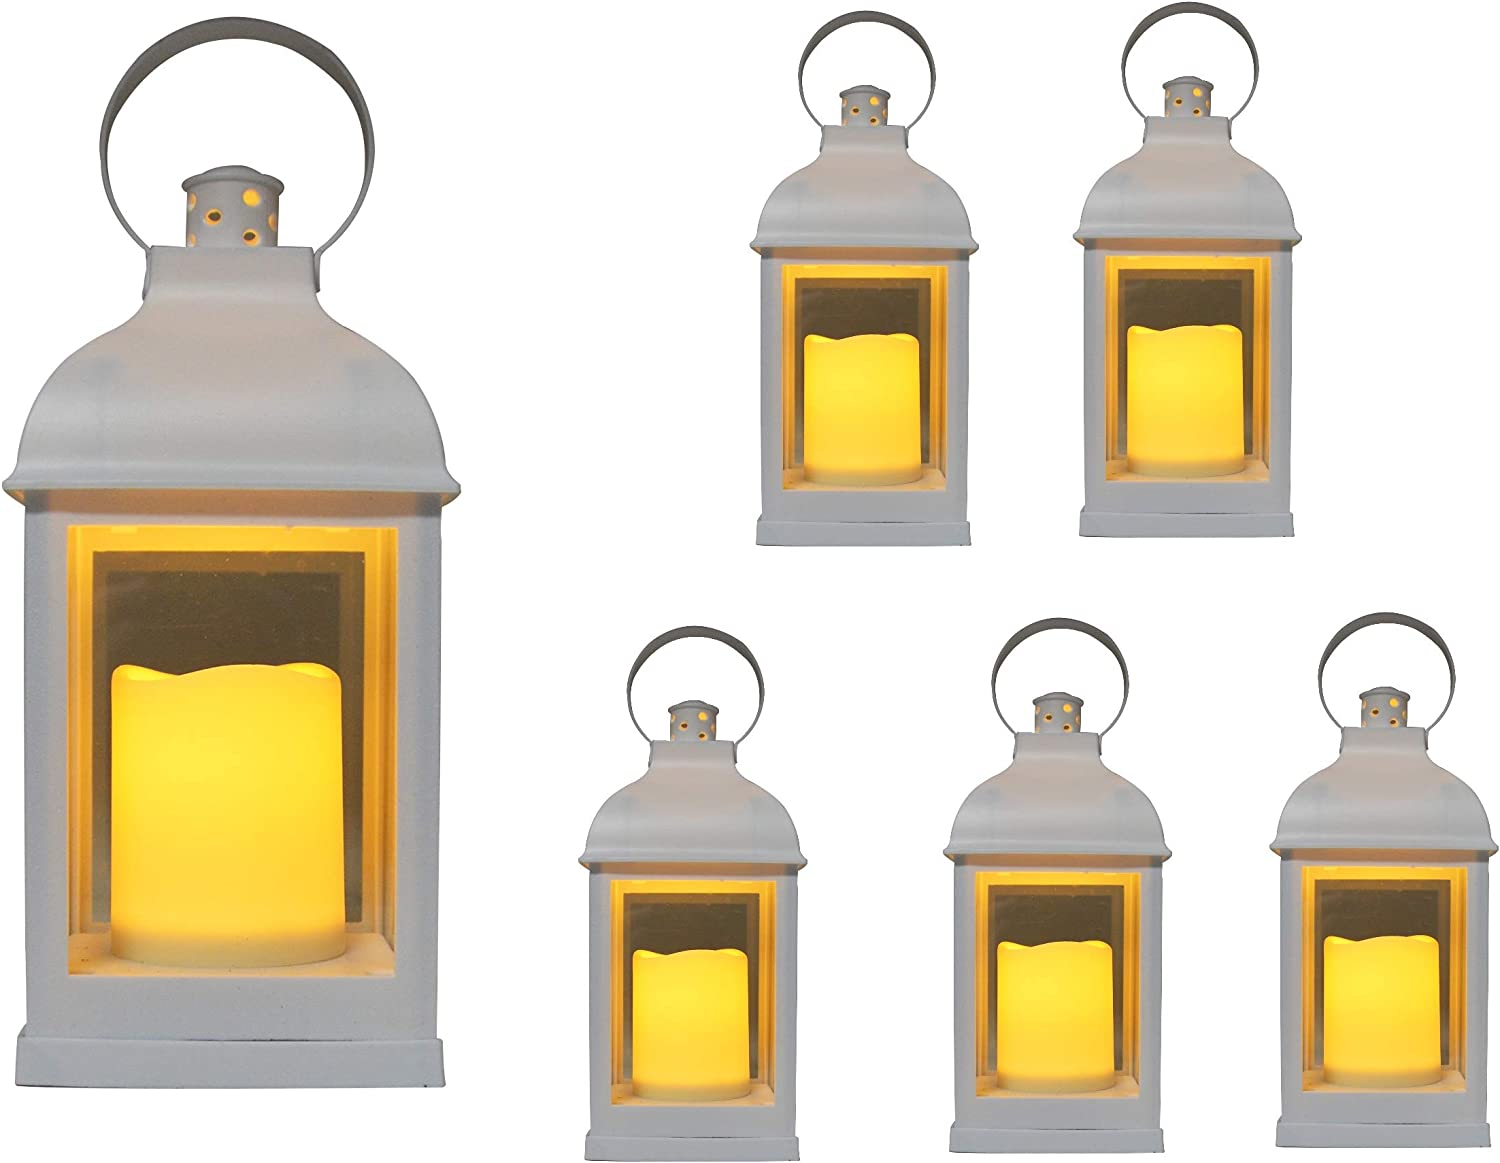 """Just in Time for Weddings {6pc Set} 10"""" Decorative Lanterns + L E D Lighted Candle w/ Flickering + 5 Hr Timer Antique Looking for Indoor Ambient Home, Outdoor Patio or Party Lights, Weddings - White"""